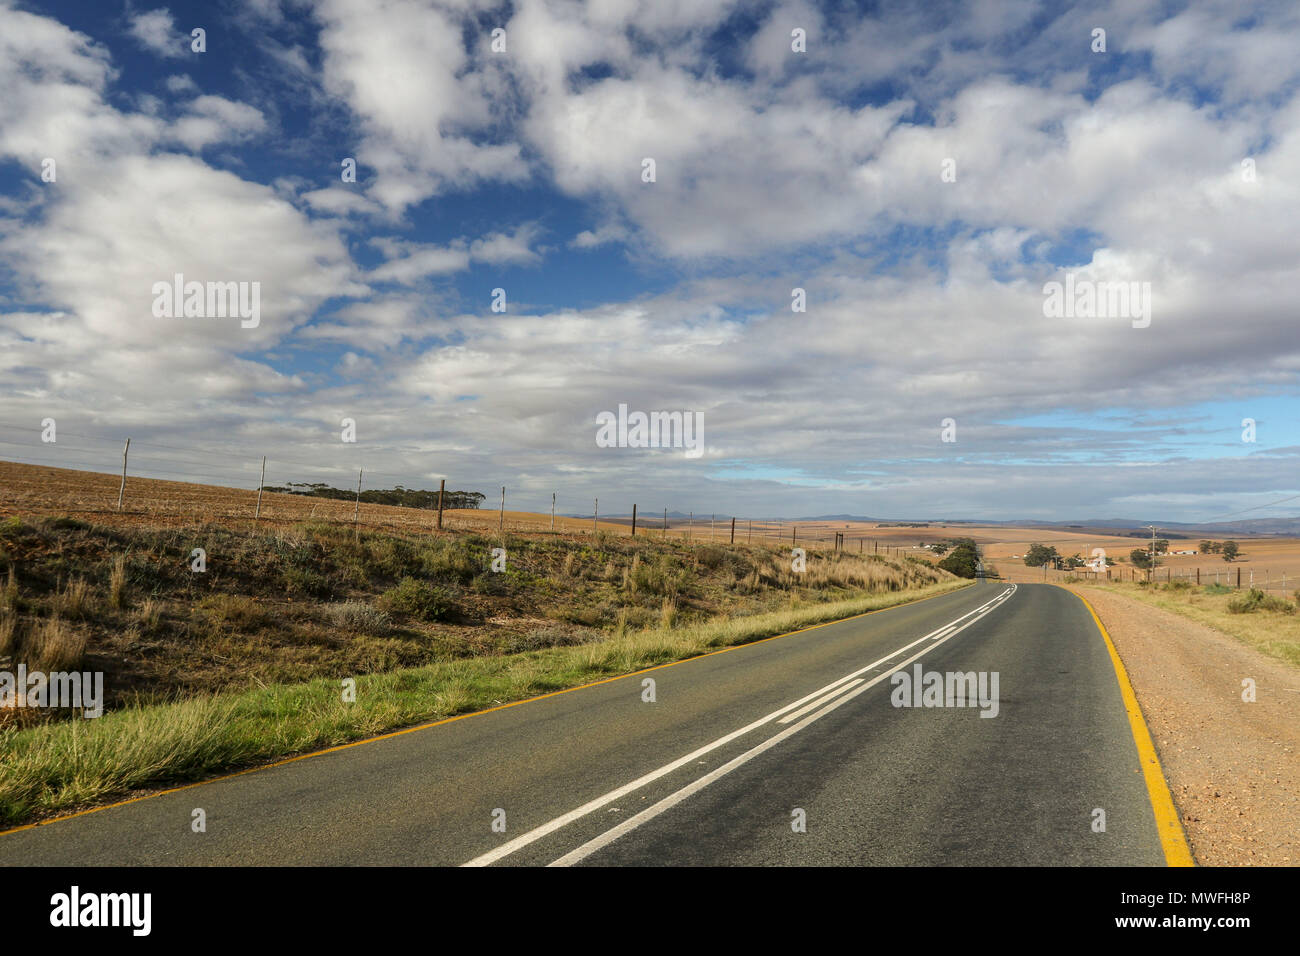 Receding road markings in the landscape with dramatic clouds and sunshine. Garden route, south africa Stock Photo